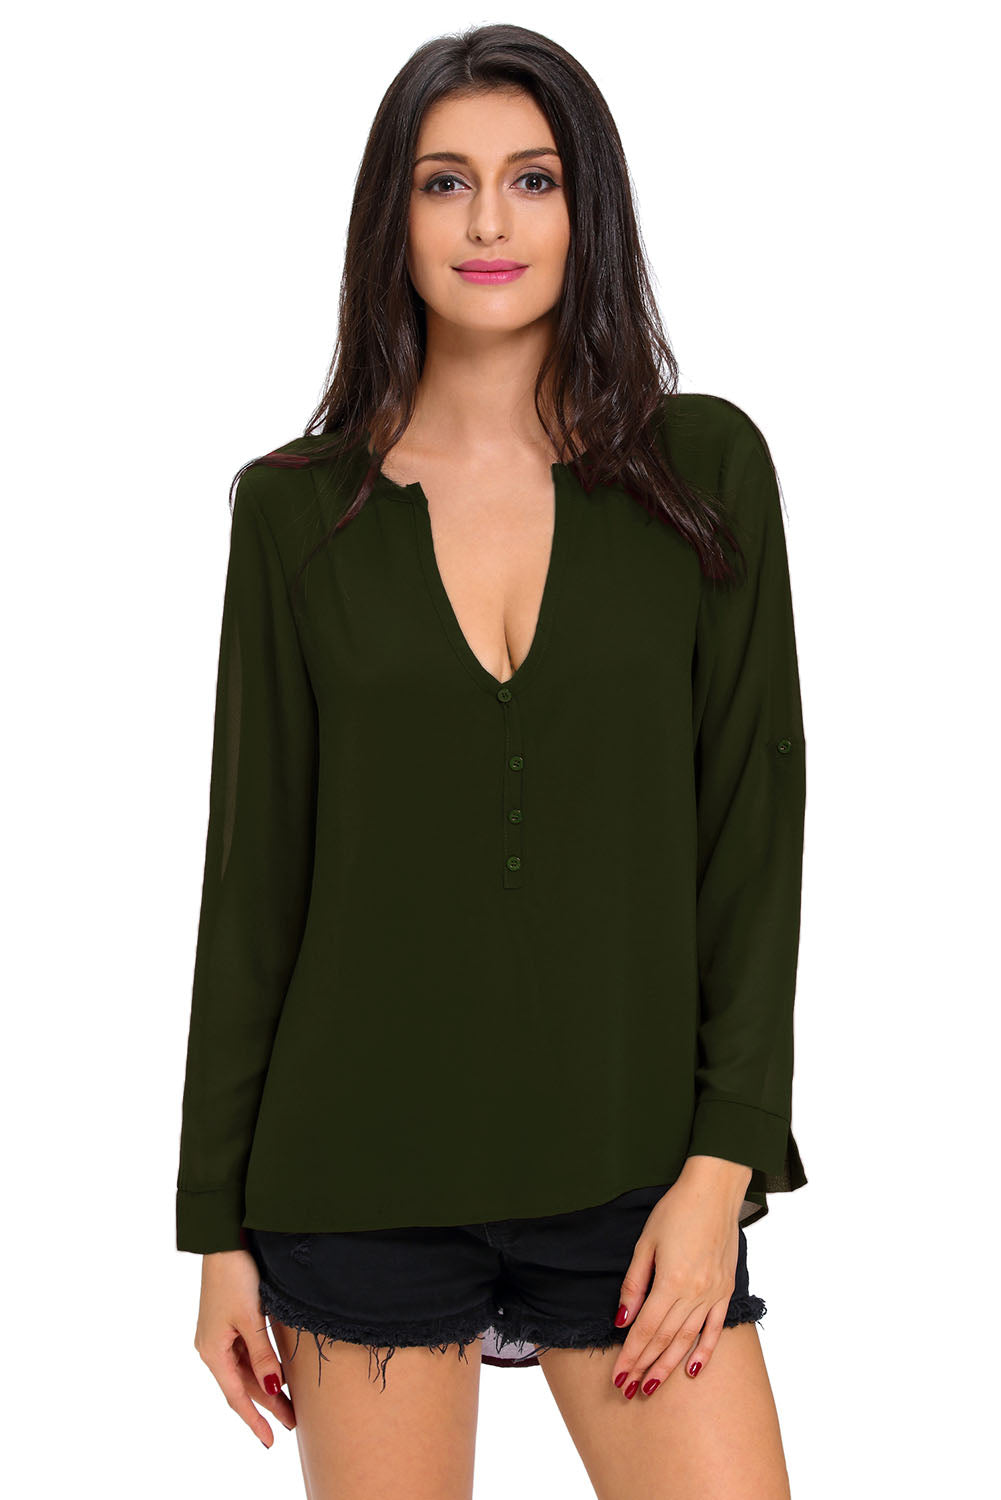 Olive Green Sheer Blouse